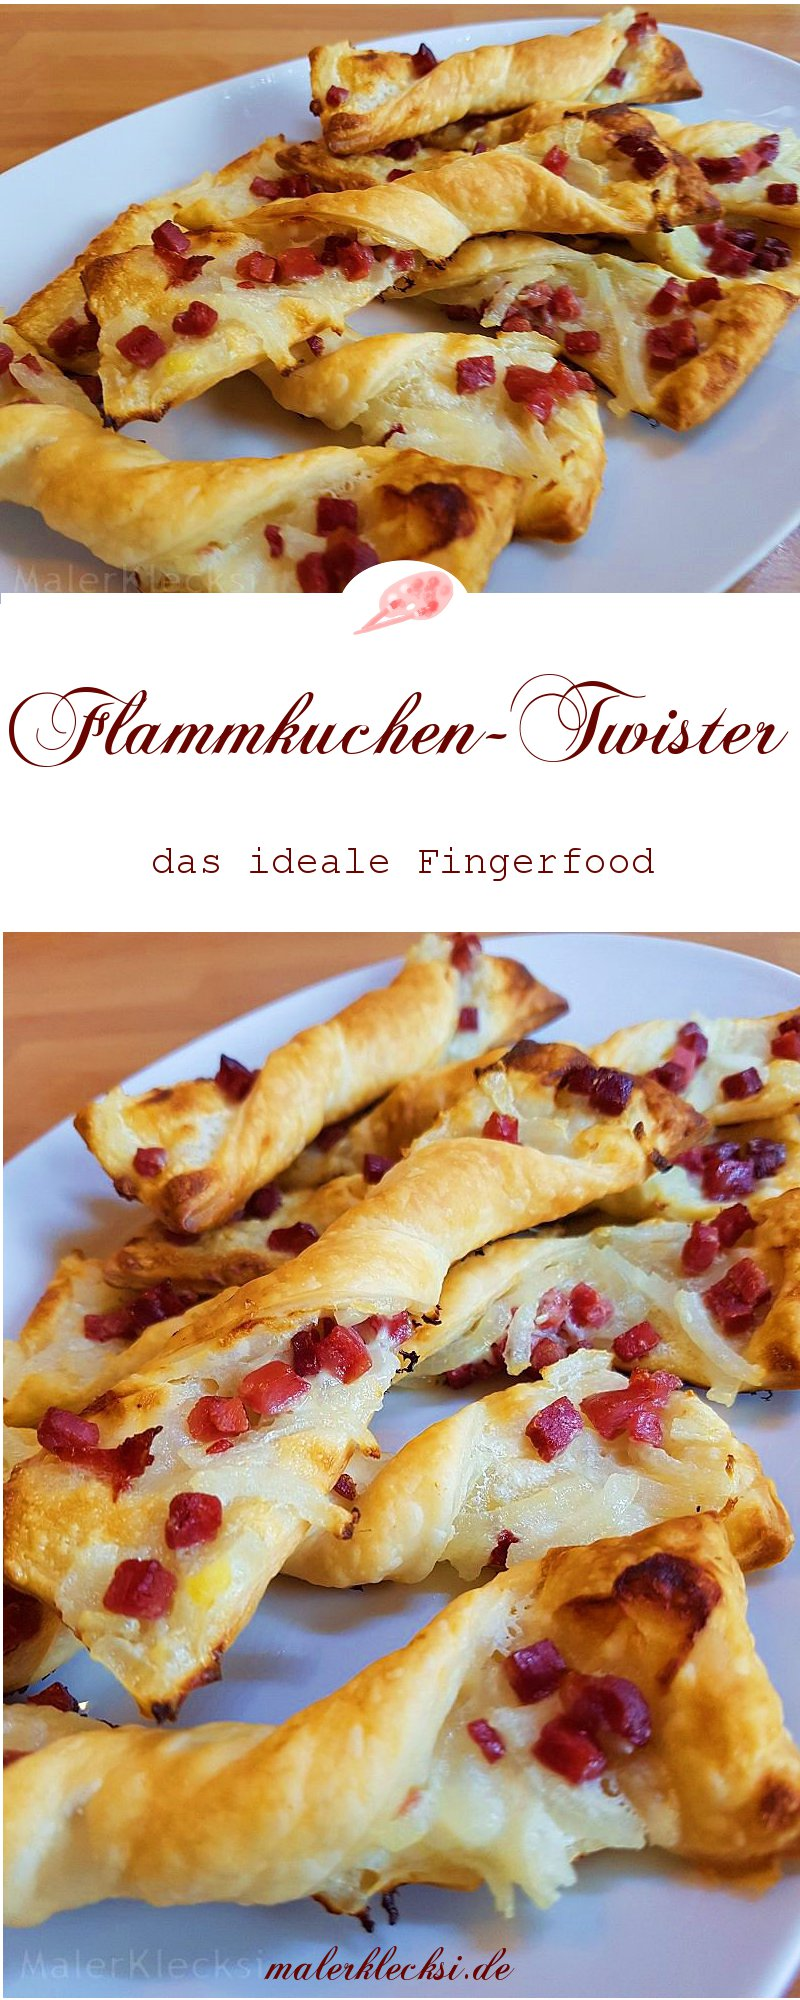 Flammkuchen-Twister, das ideale Fingerfood - MalerKlecksi